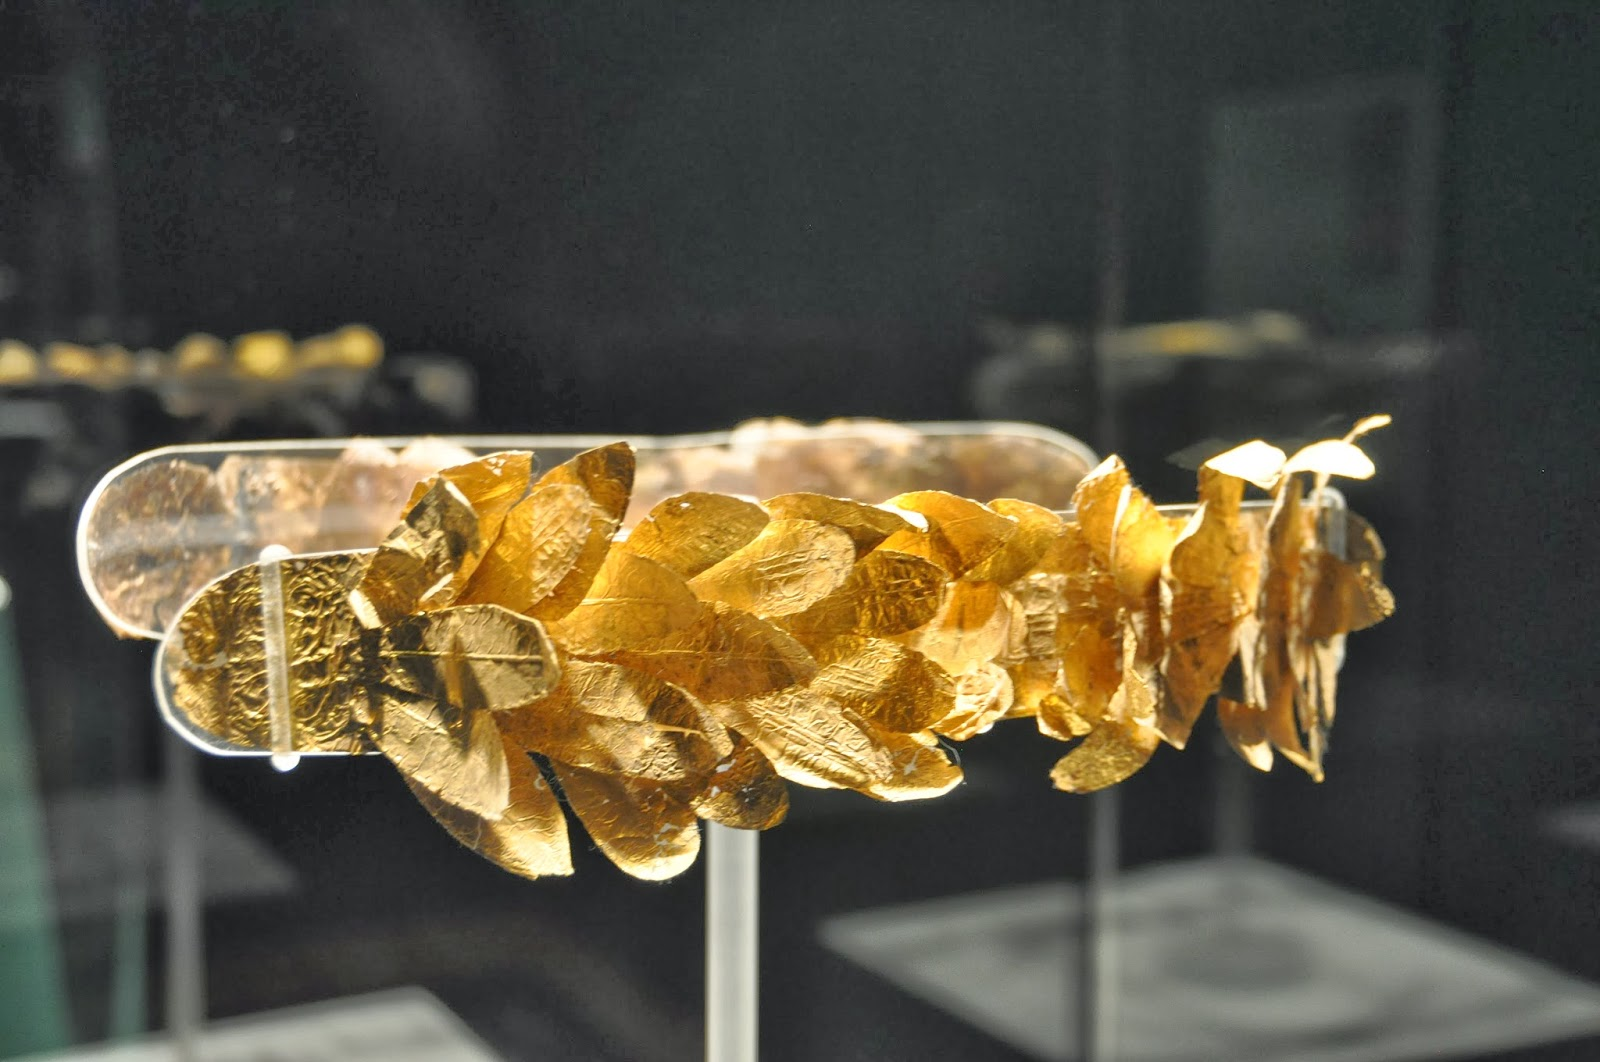 Stunning Exquisite gold jewelry from etruscan tombs